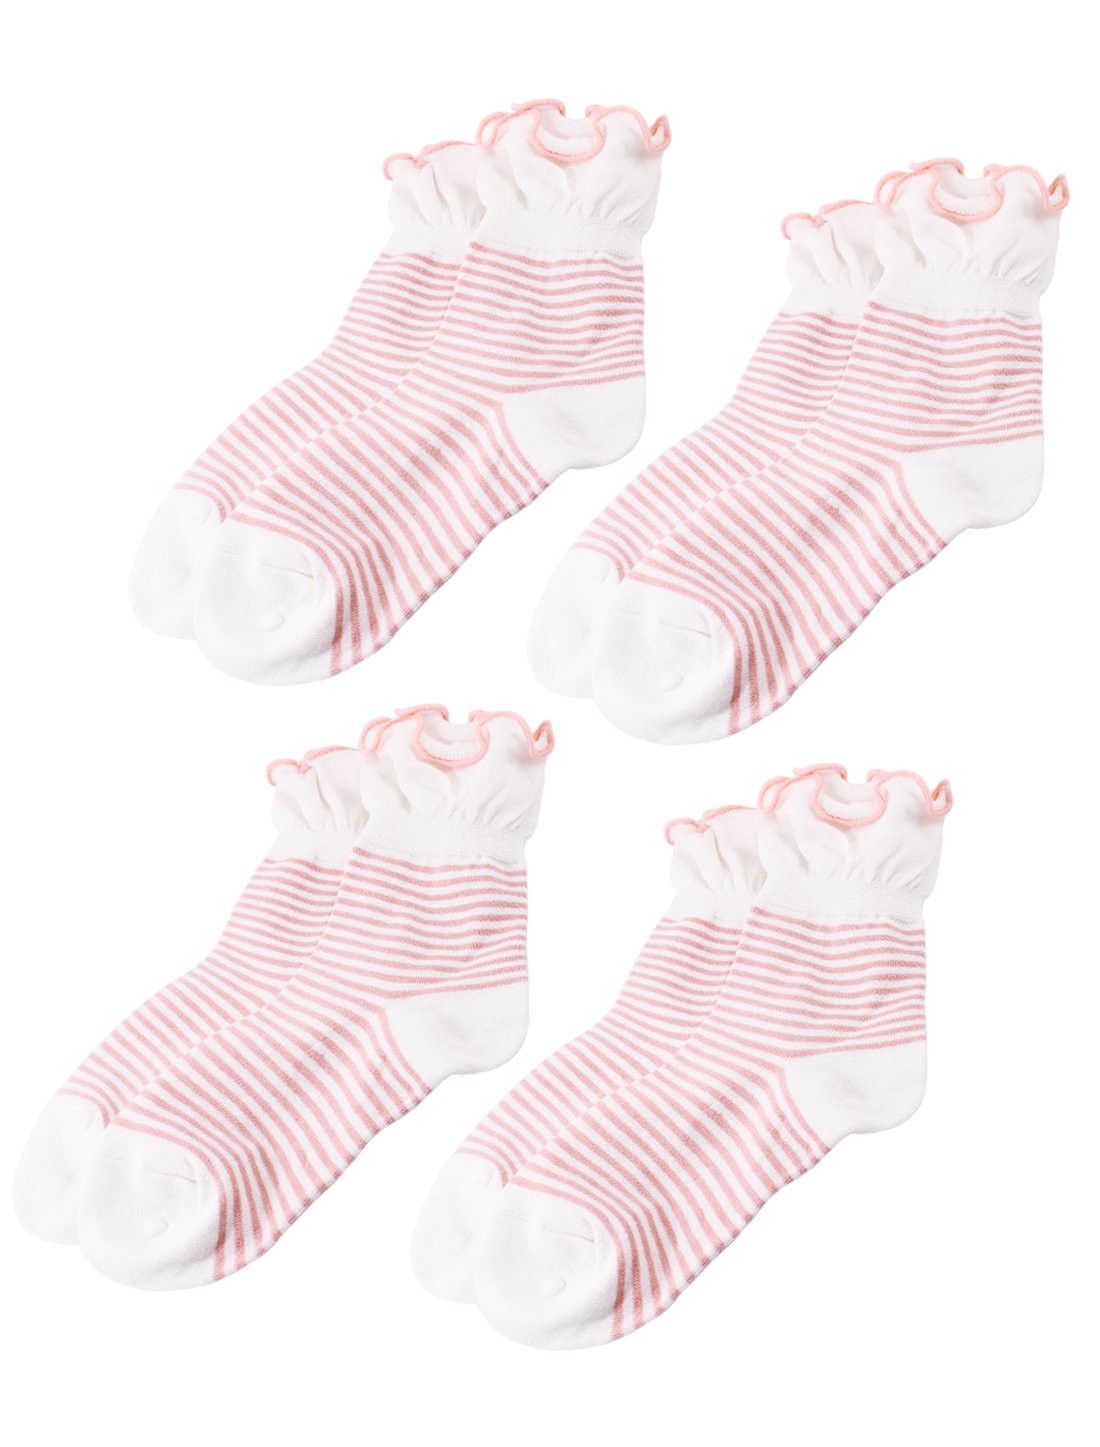 Woman Winter Fall Stretch Pleated Cuff Stripe Pattern Crew Ankle High Sport Casual Socks Red Black Pale Pink White 4 Pairs